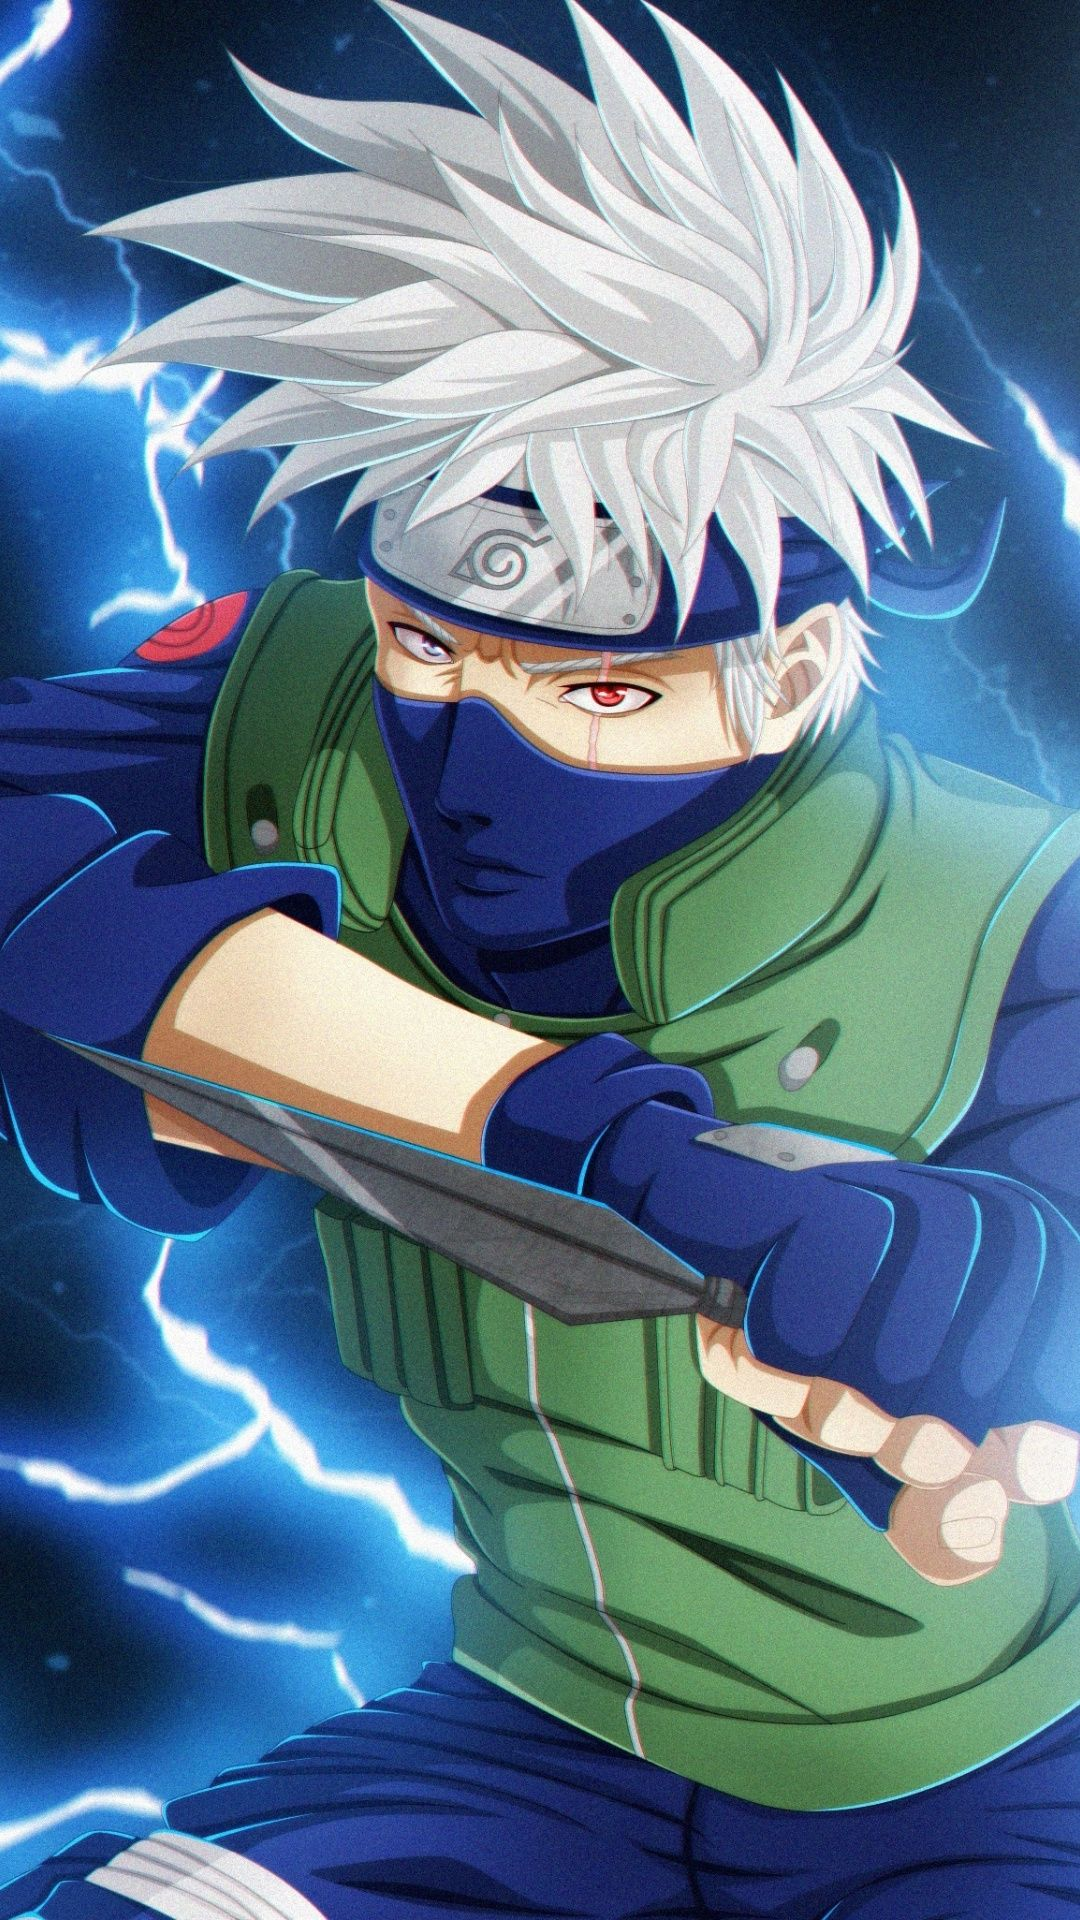 Anime Kakashi Hatake White Hair Anime Boy Art 1080x1920 Wallpaper Kakashi Hatake Kakashi Hd Anime Wallpapers